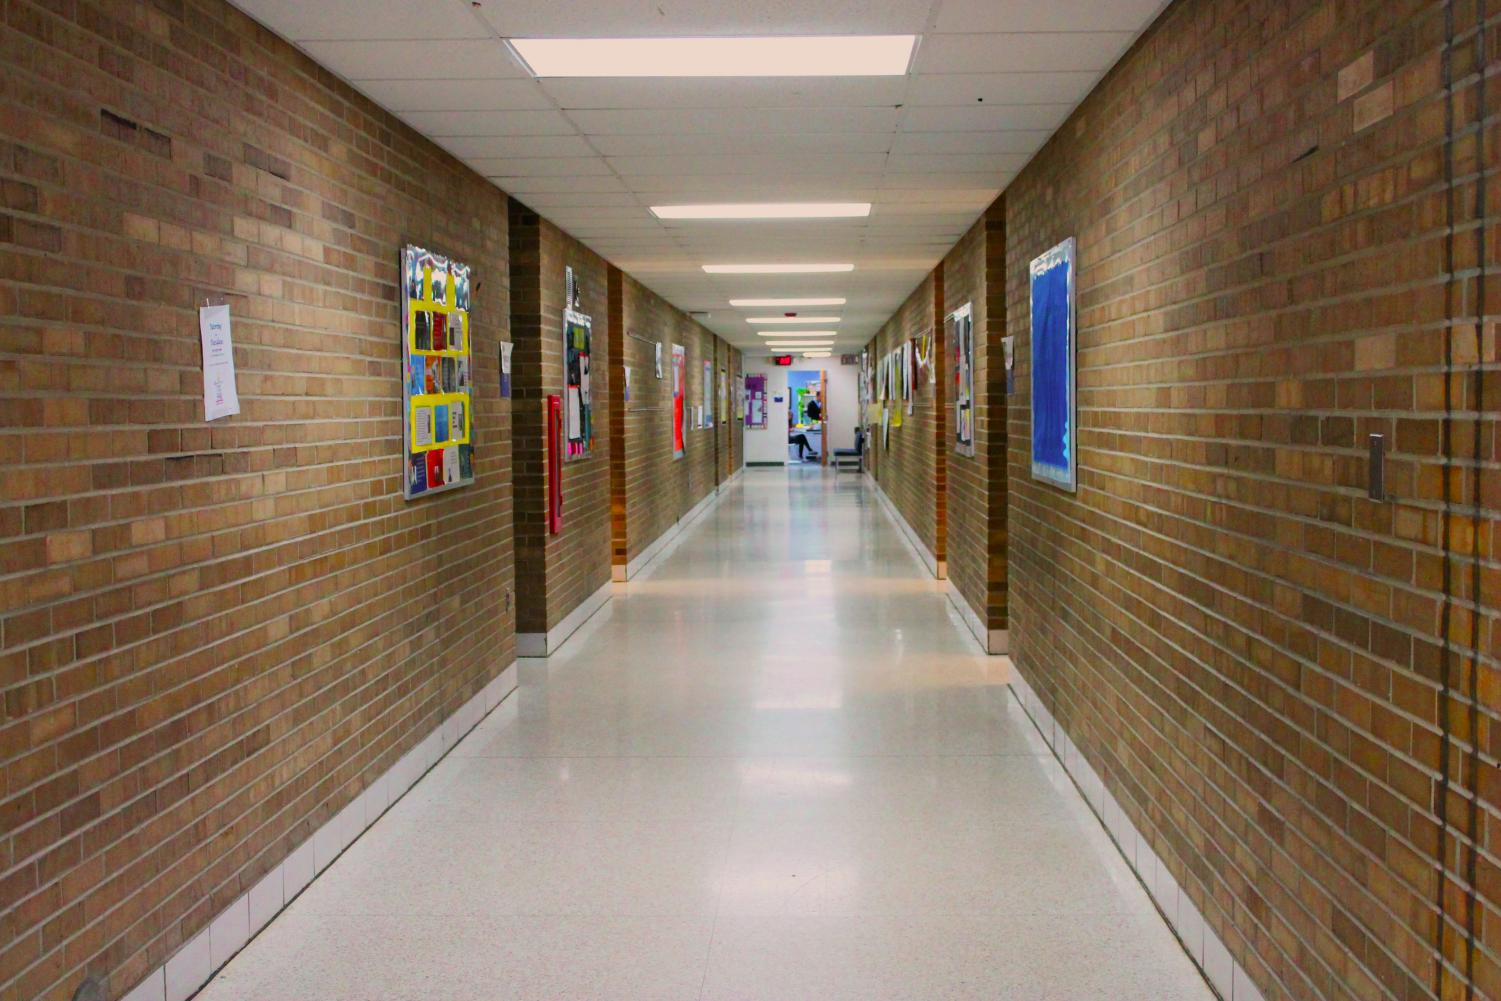 Troy College and Career High School, their single hallway of classrooms.